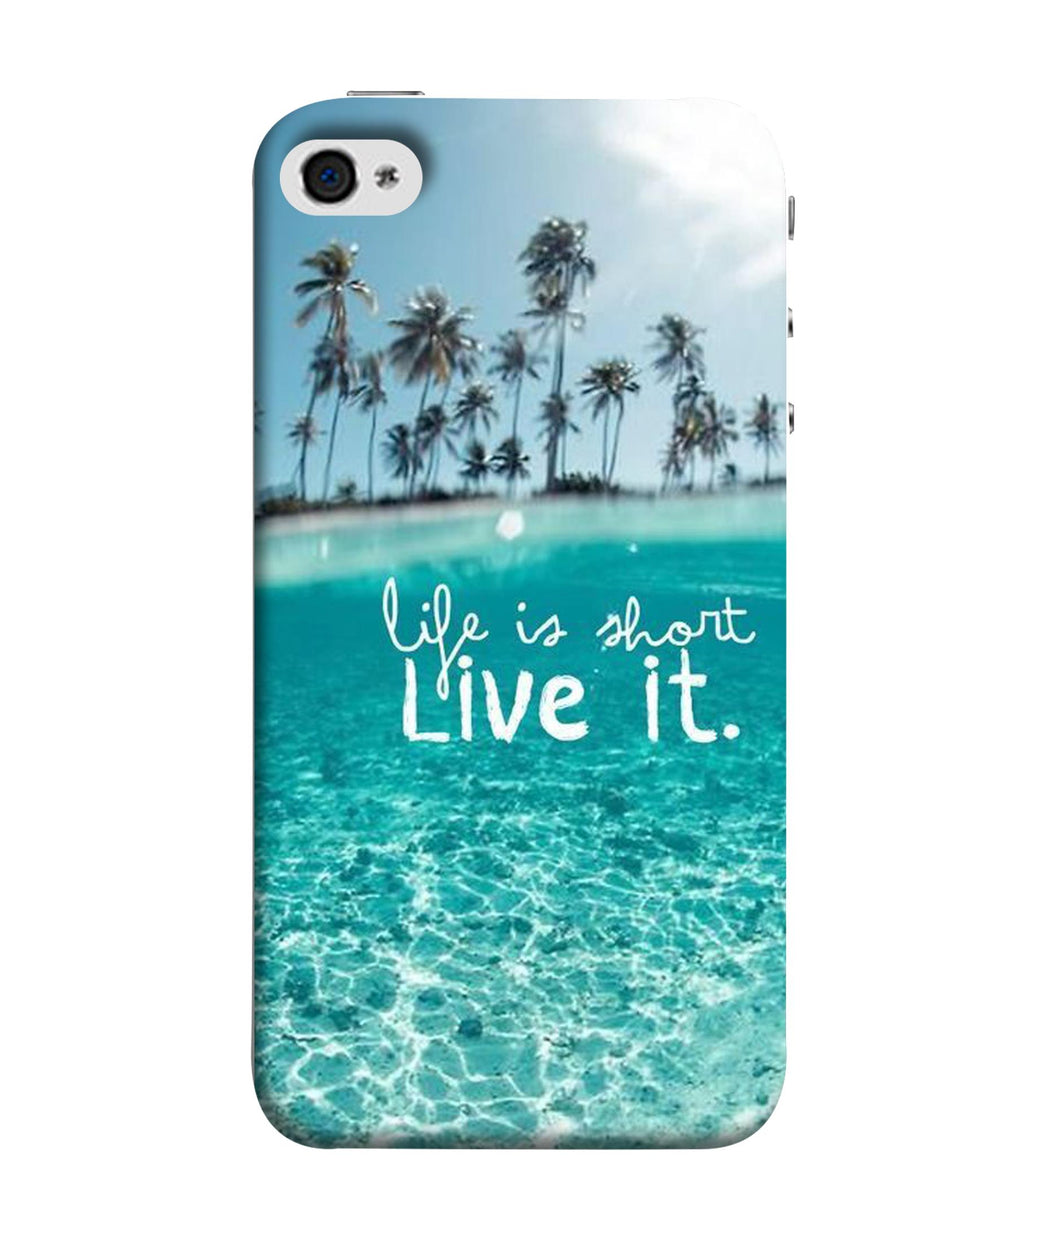 Apple Iphone 5s Live Life Mobile cover